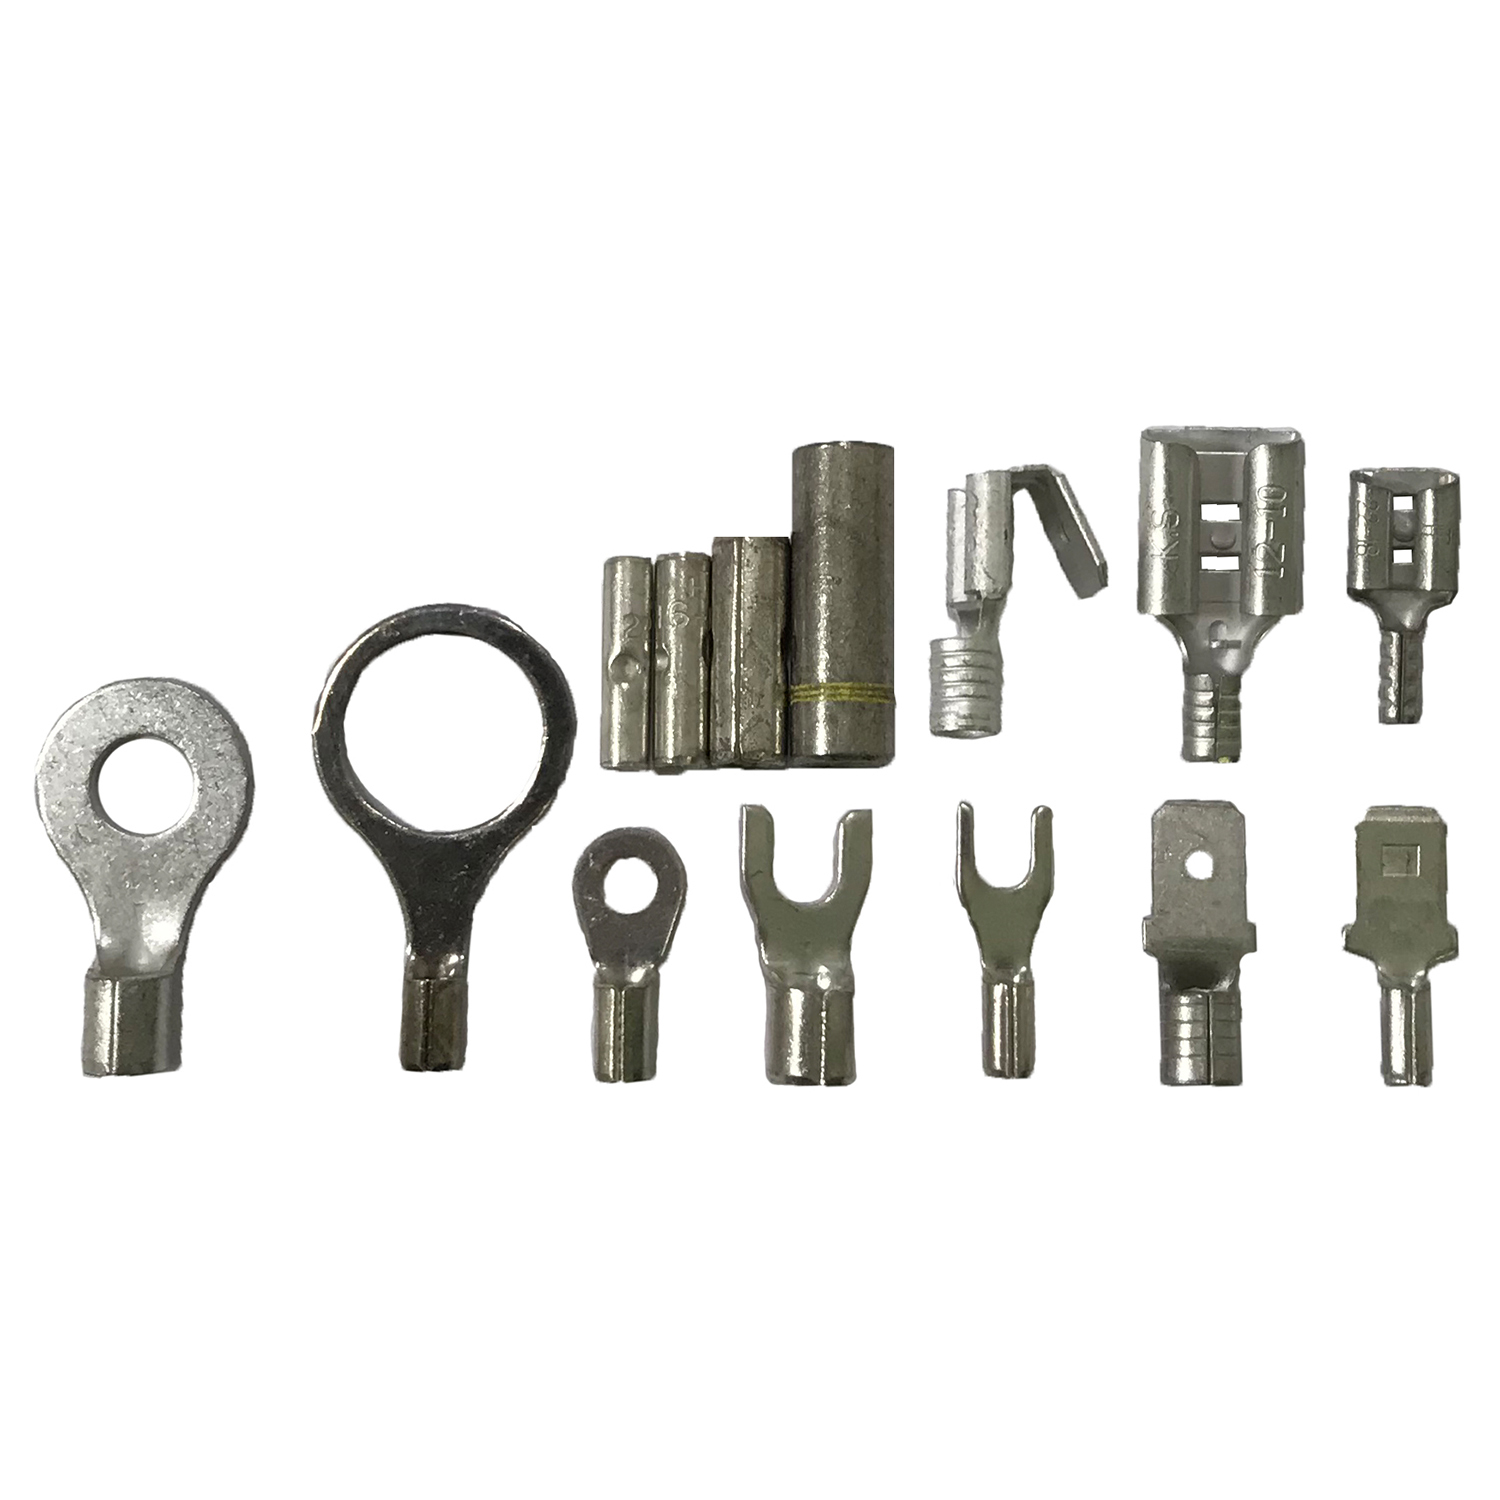 Cable Clips Steel Auto Marine Cables